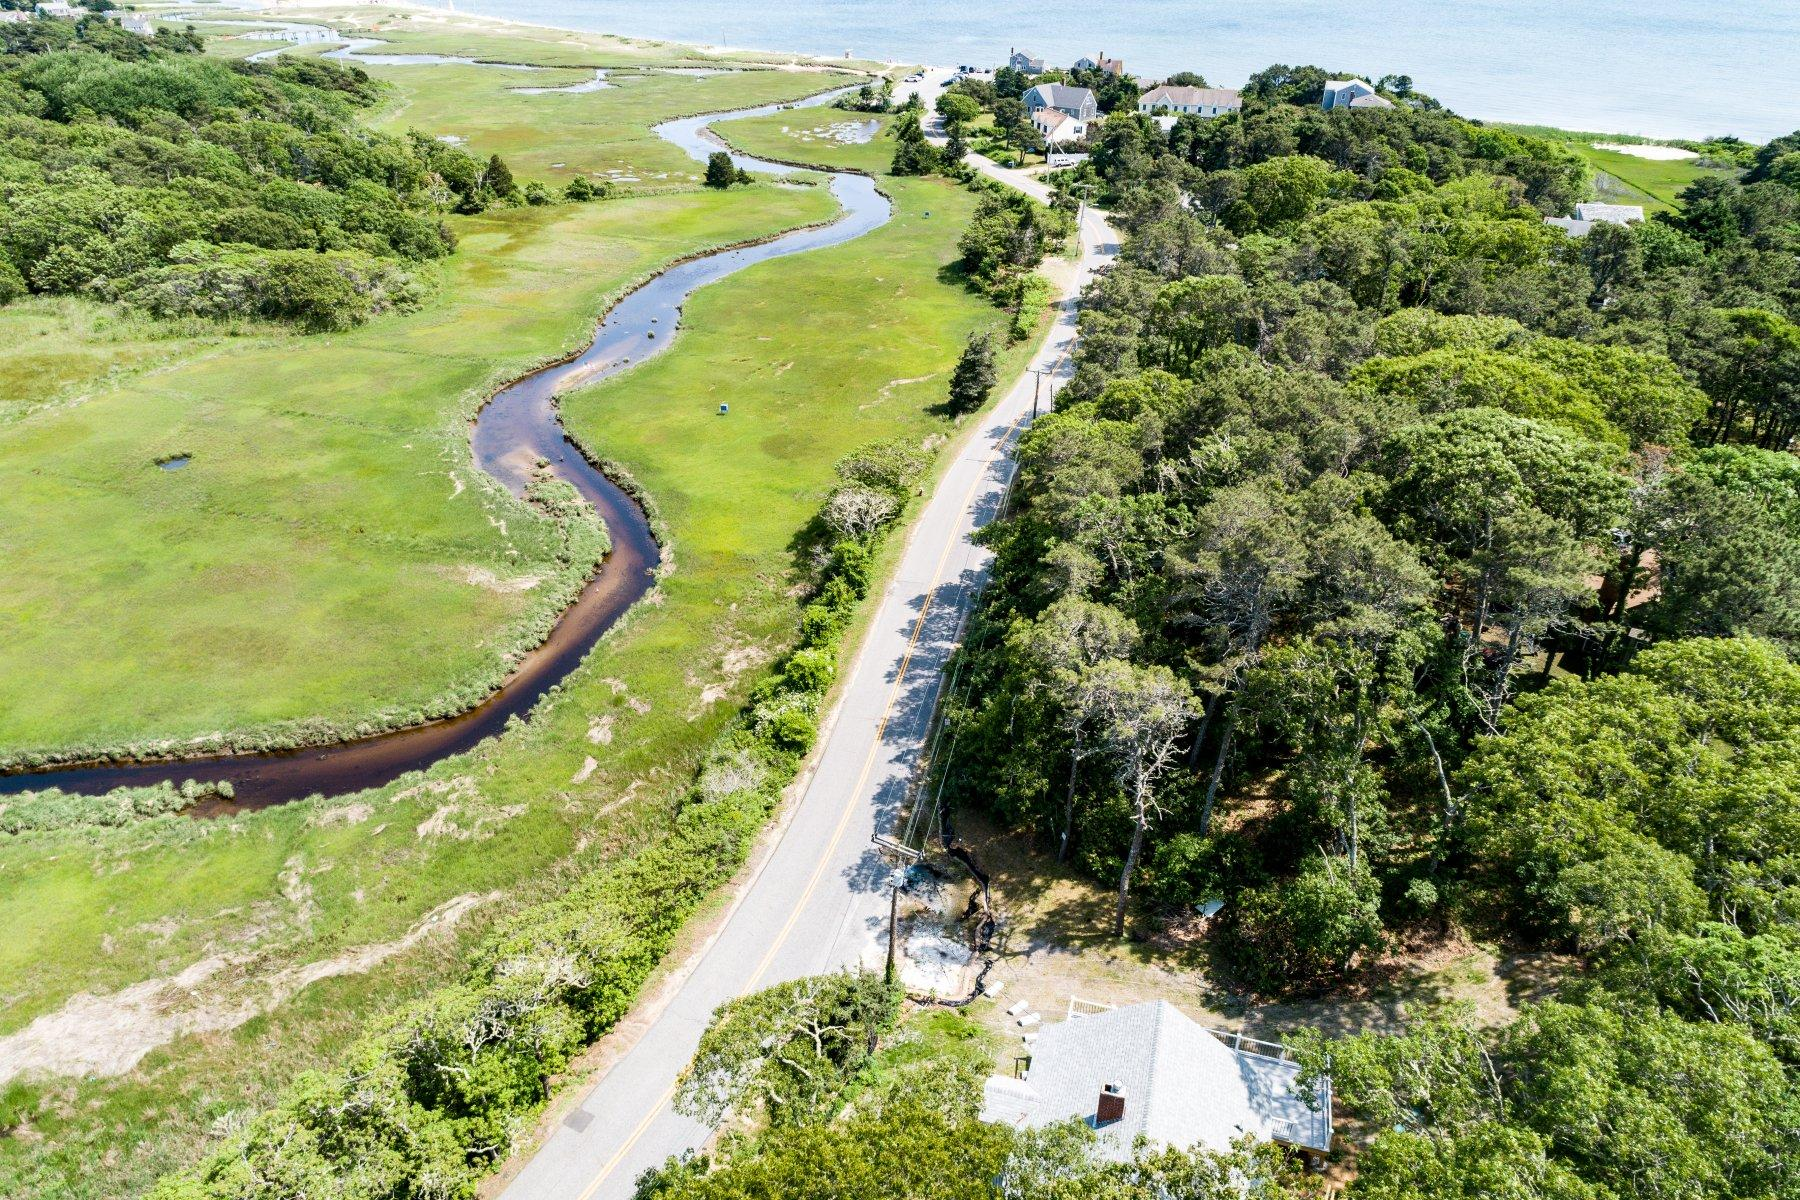 314-cockle-cove-road-south-chatham-ma-02659